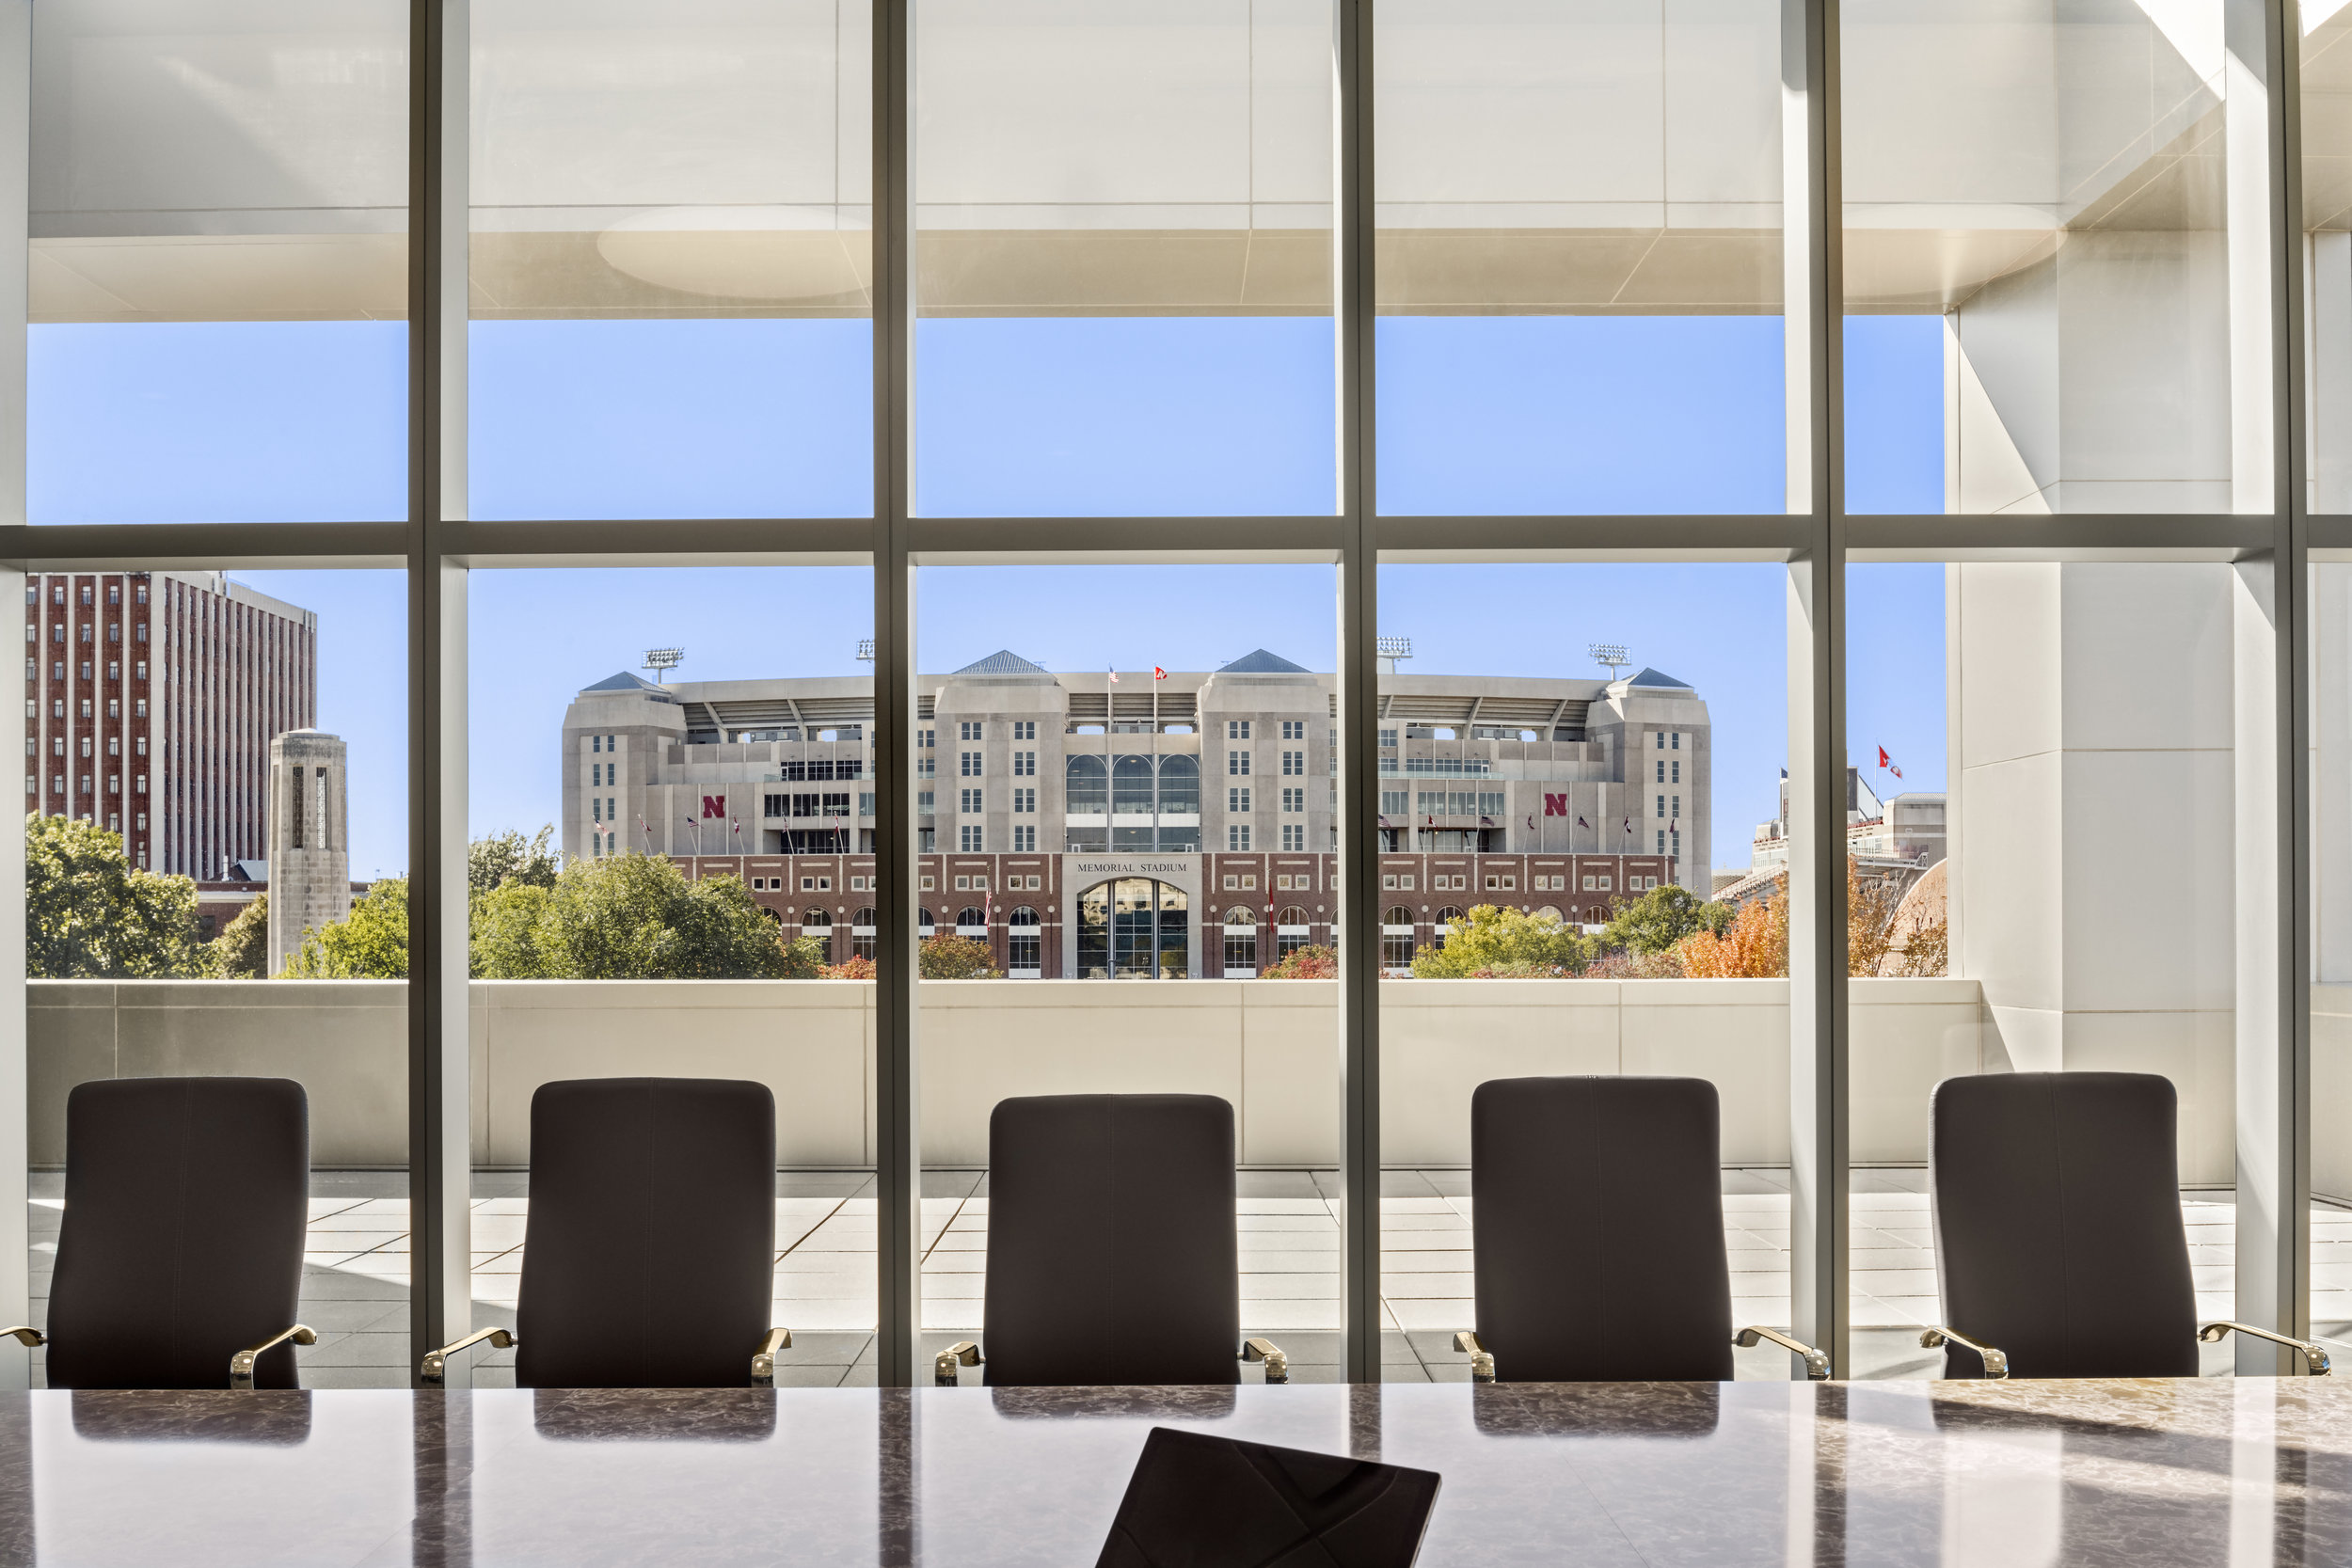 University of Nebraska at Lincoln, College of Business, Offices |  Lincoln, NE  |  Lincoln, NE   View Gallery »